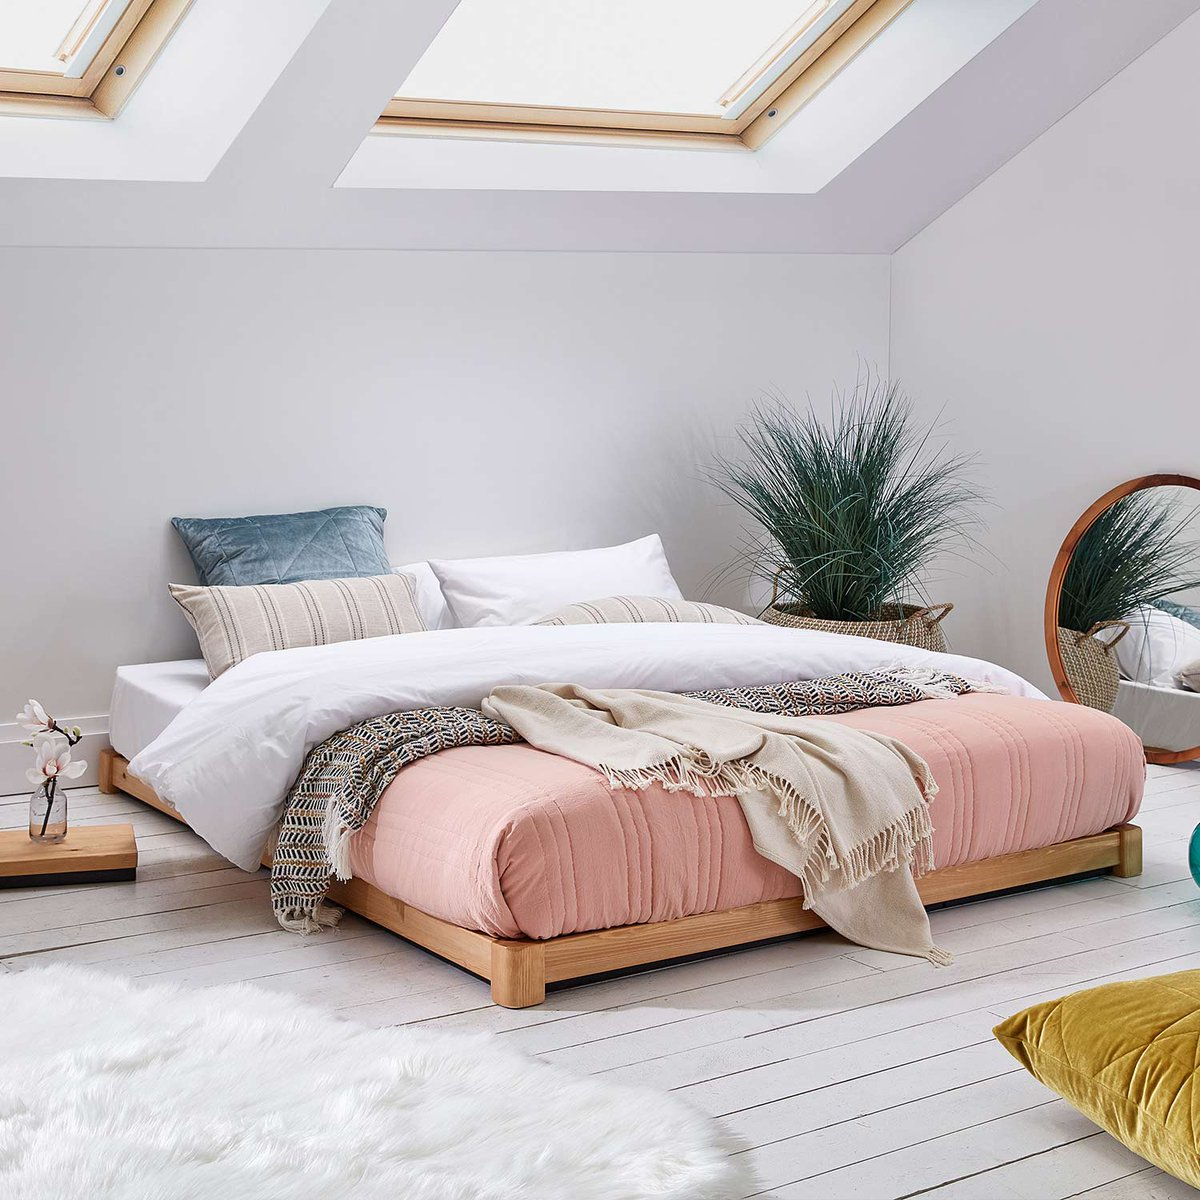 Picture of: Get Laid Beds در توییتر Low Beds Are Perfect For The Loft Or Attic Conversion Where Often Low Ceilings Are An Issue Handmade To Order We Can Customise Their Size For Your